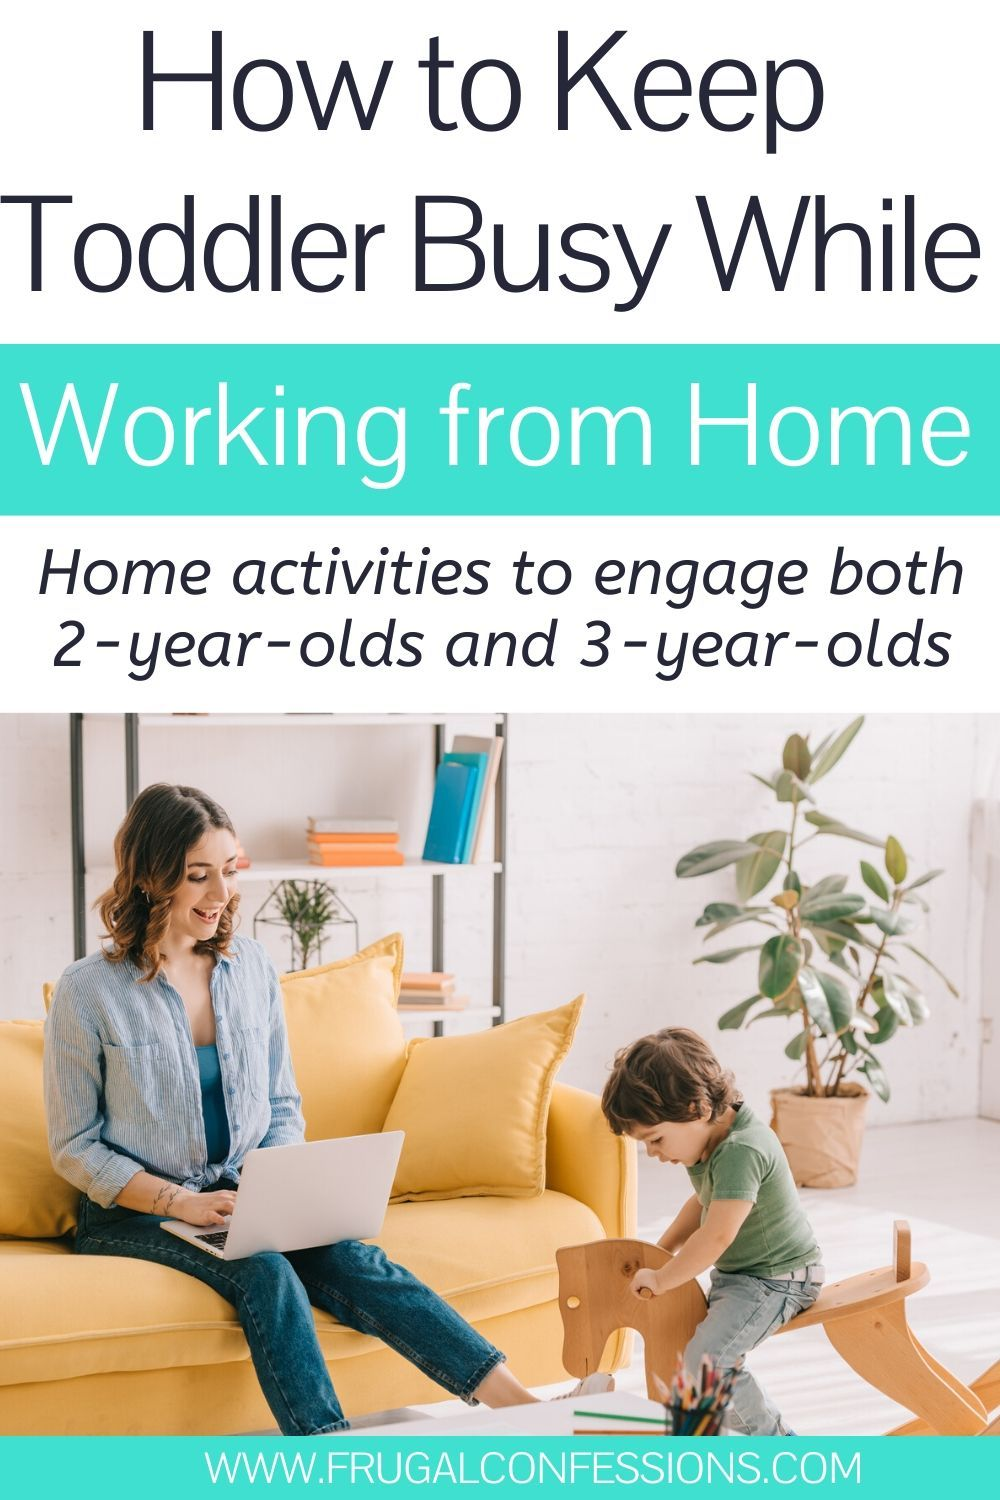 How to Keep Toddler Busy While Working from Home (Cheap Solutions)